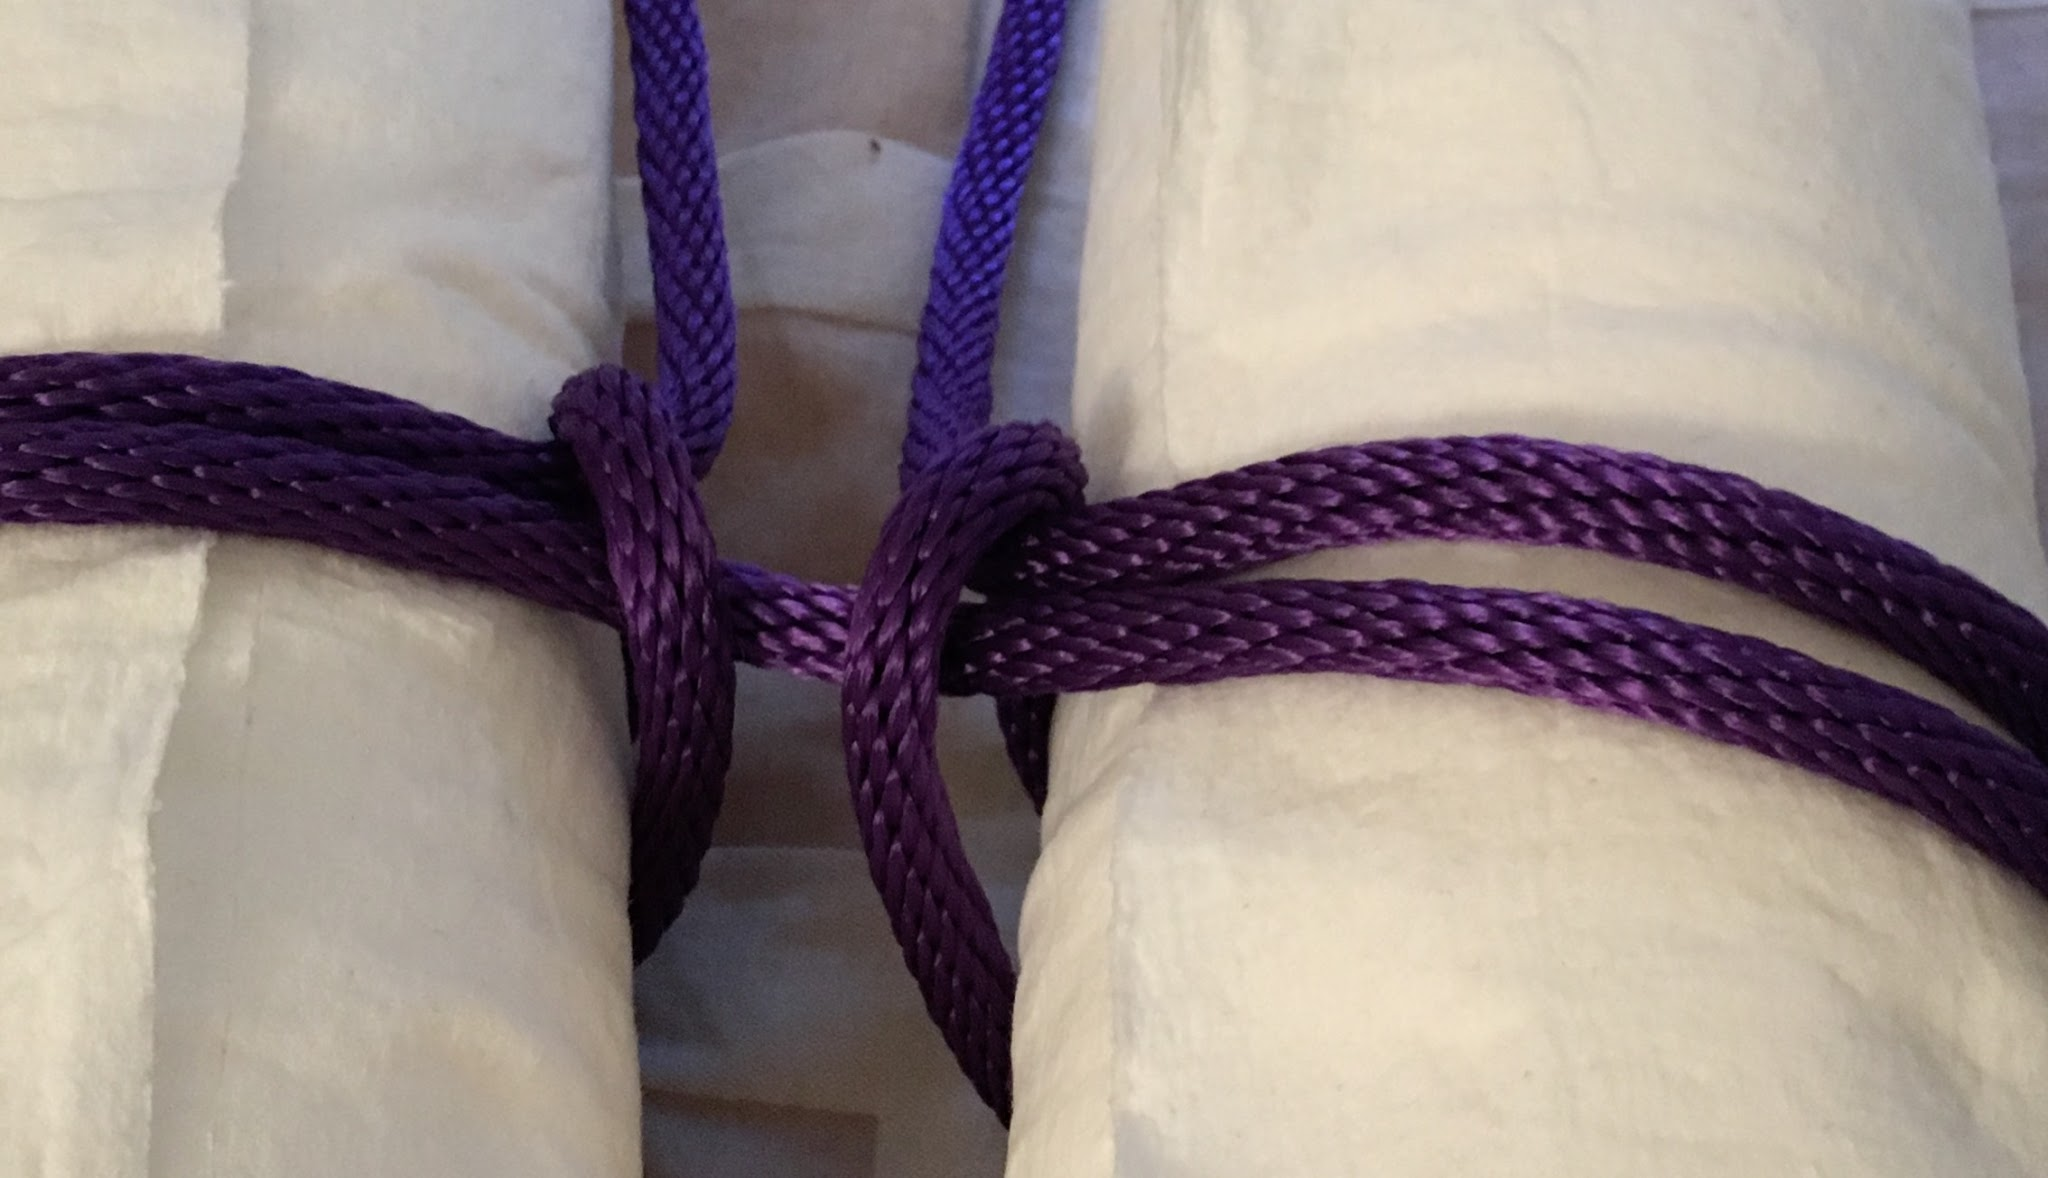 Close-up of rope tied around two paper towel rolls